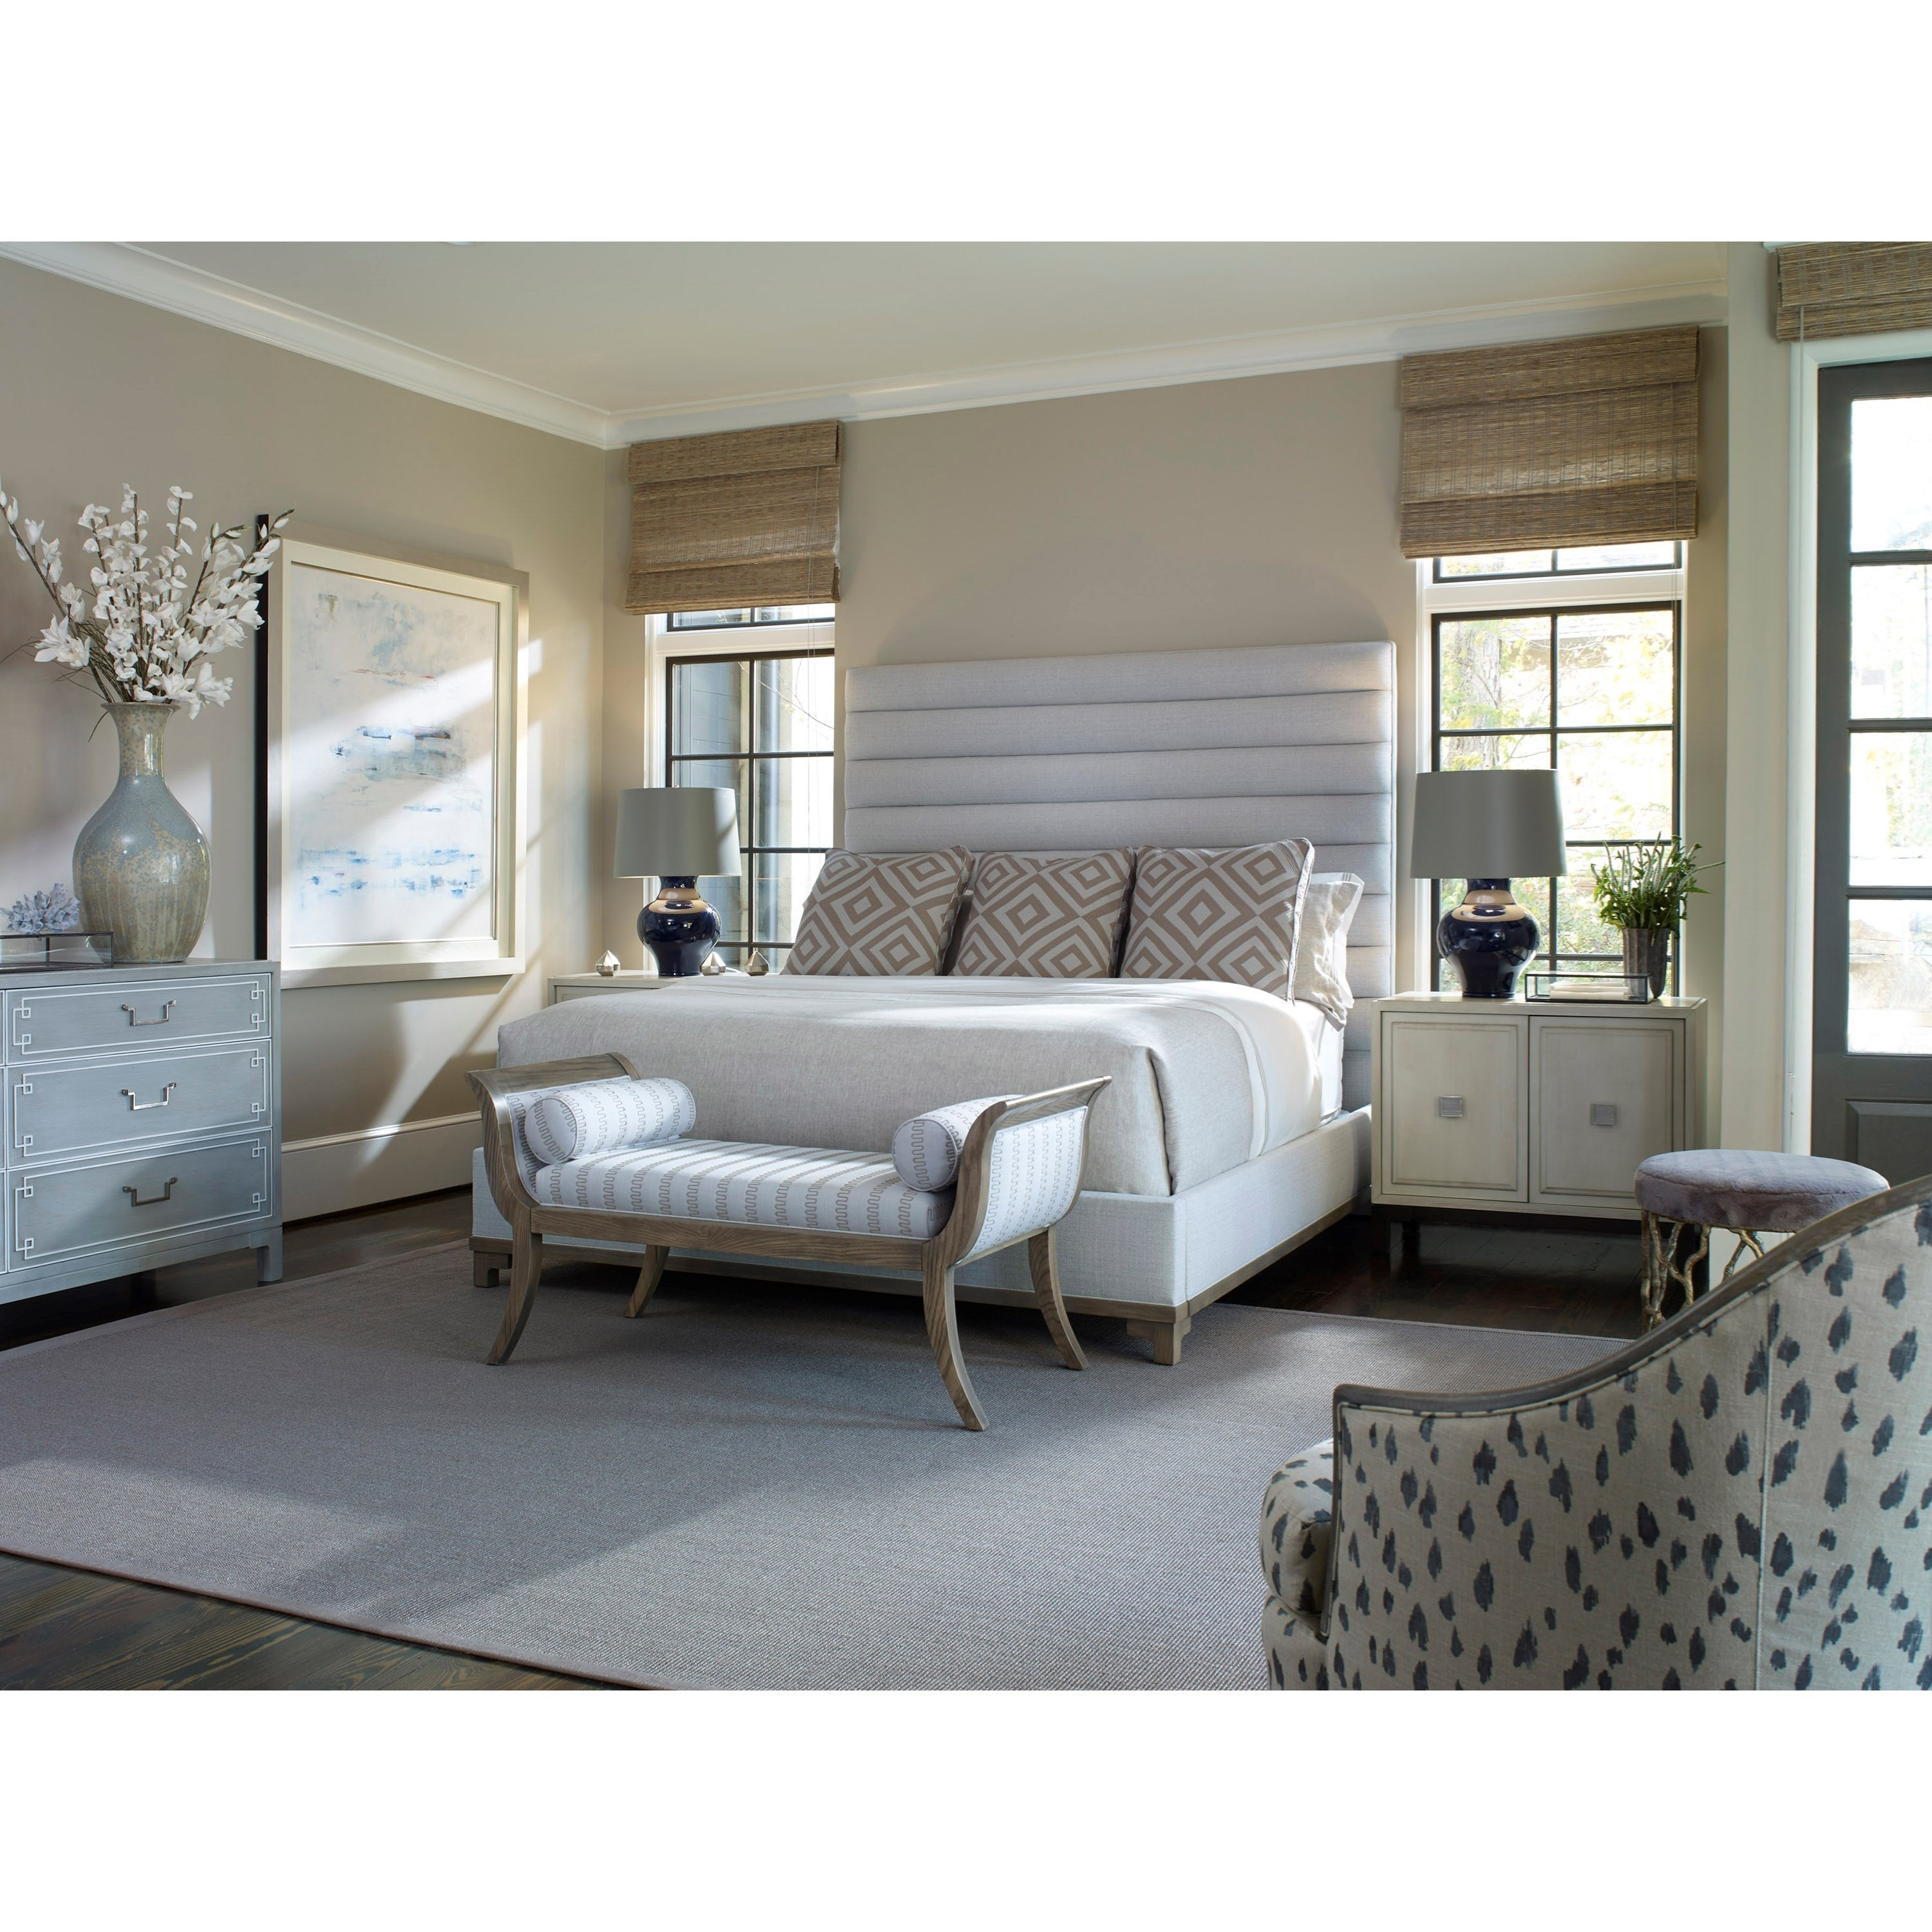 ... Vanguard Furniture KelseyKelsey King Platform Bed